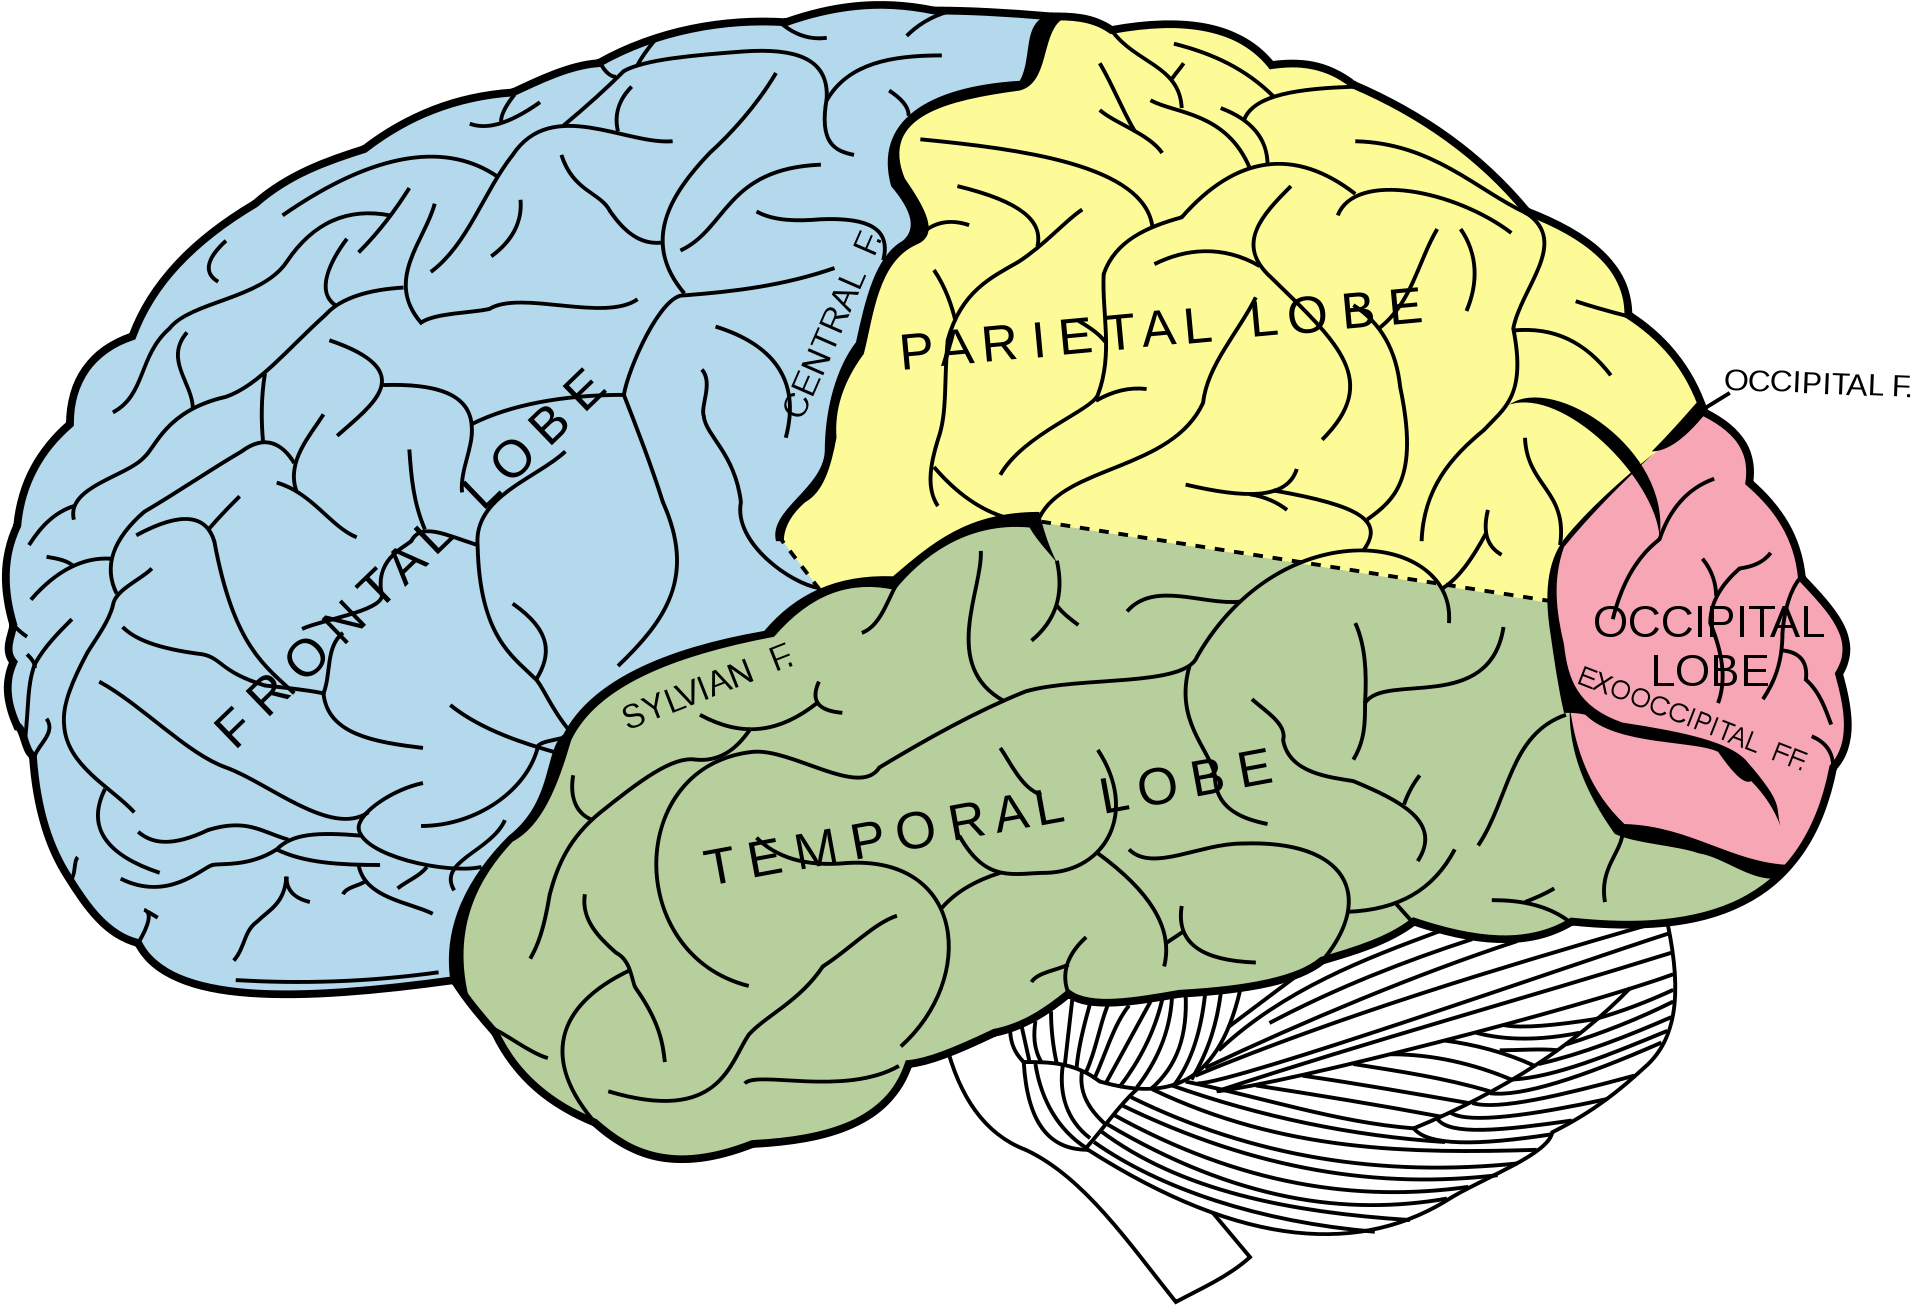 Learn Fascinating Studies About The Brain, Consciousness - Lobes Of The Brain Unlabeled Clipart (800x571), Png Download